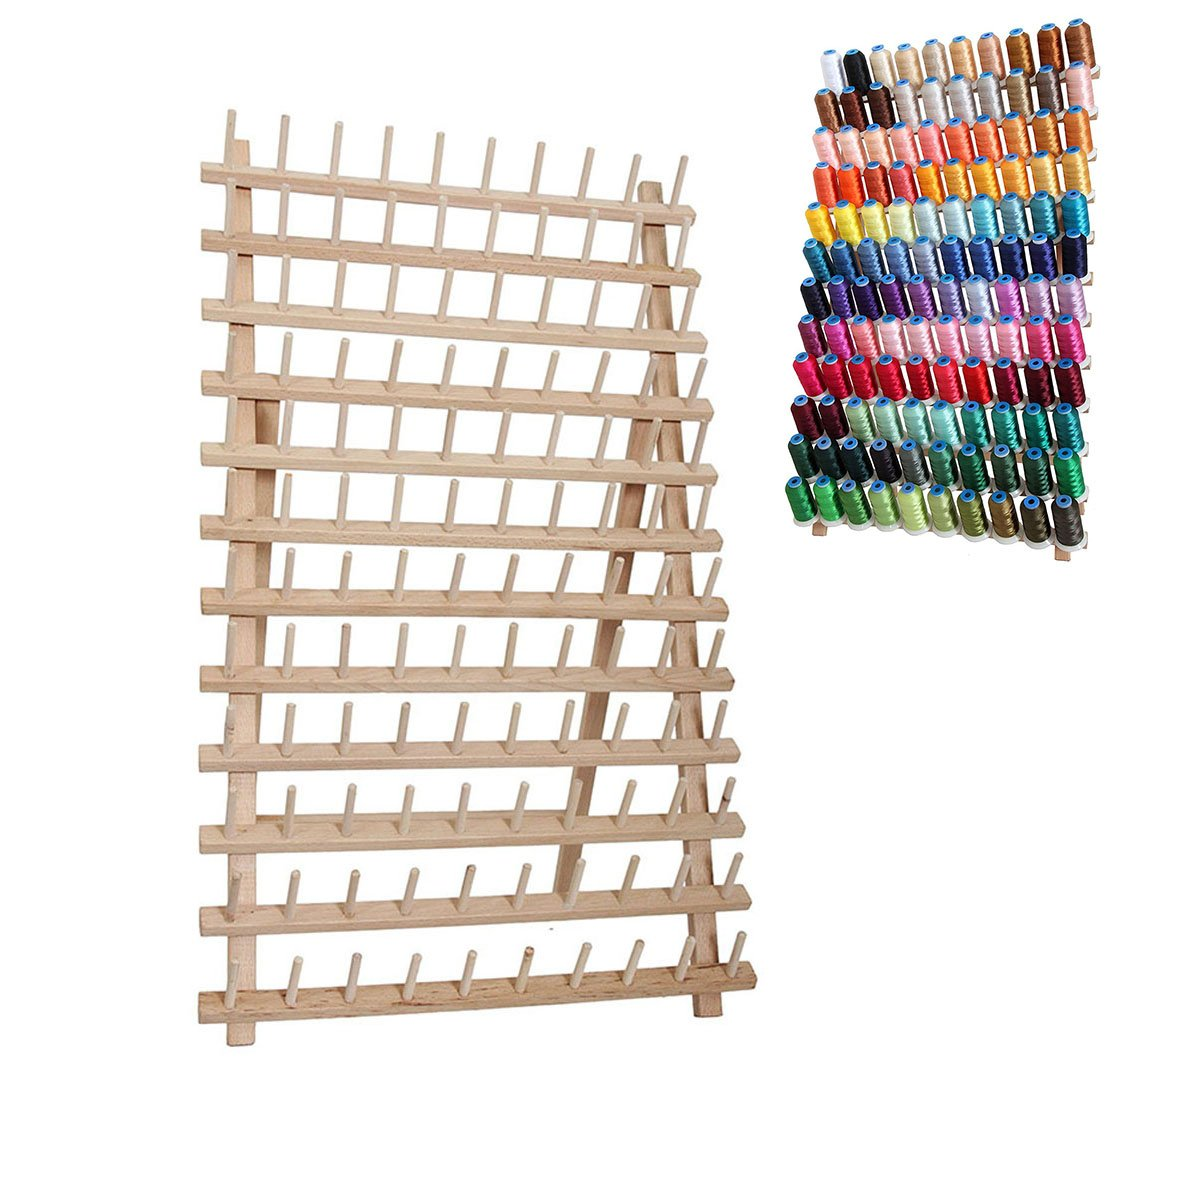 Healifty Wooden Thread Rack Sewing Embroidery Thread Rack for Sewing Quilting Embroidery Threads Cones 2pcs by Healifty